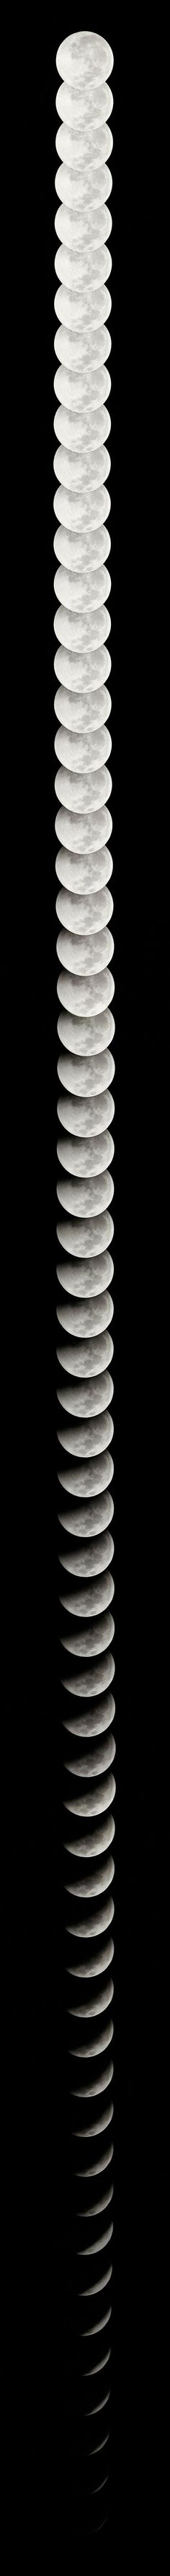 The Moon: 29 days, 12 hours, 43 minutes, 12 seconds. In this magnificent photographic composition, one can appreciate the scene which becomes a lunar month as it travels through space.  Cool.